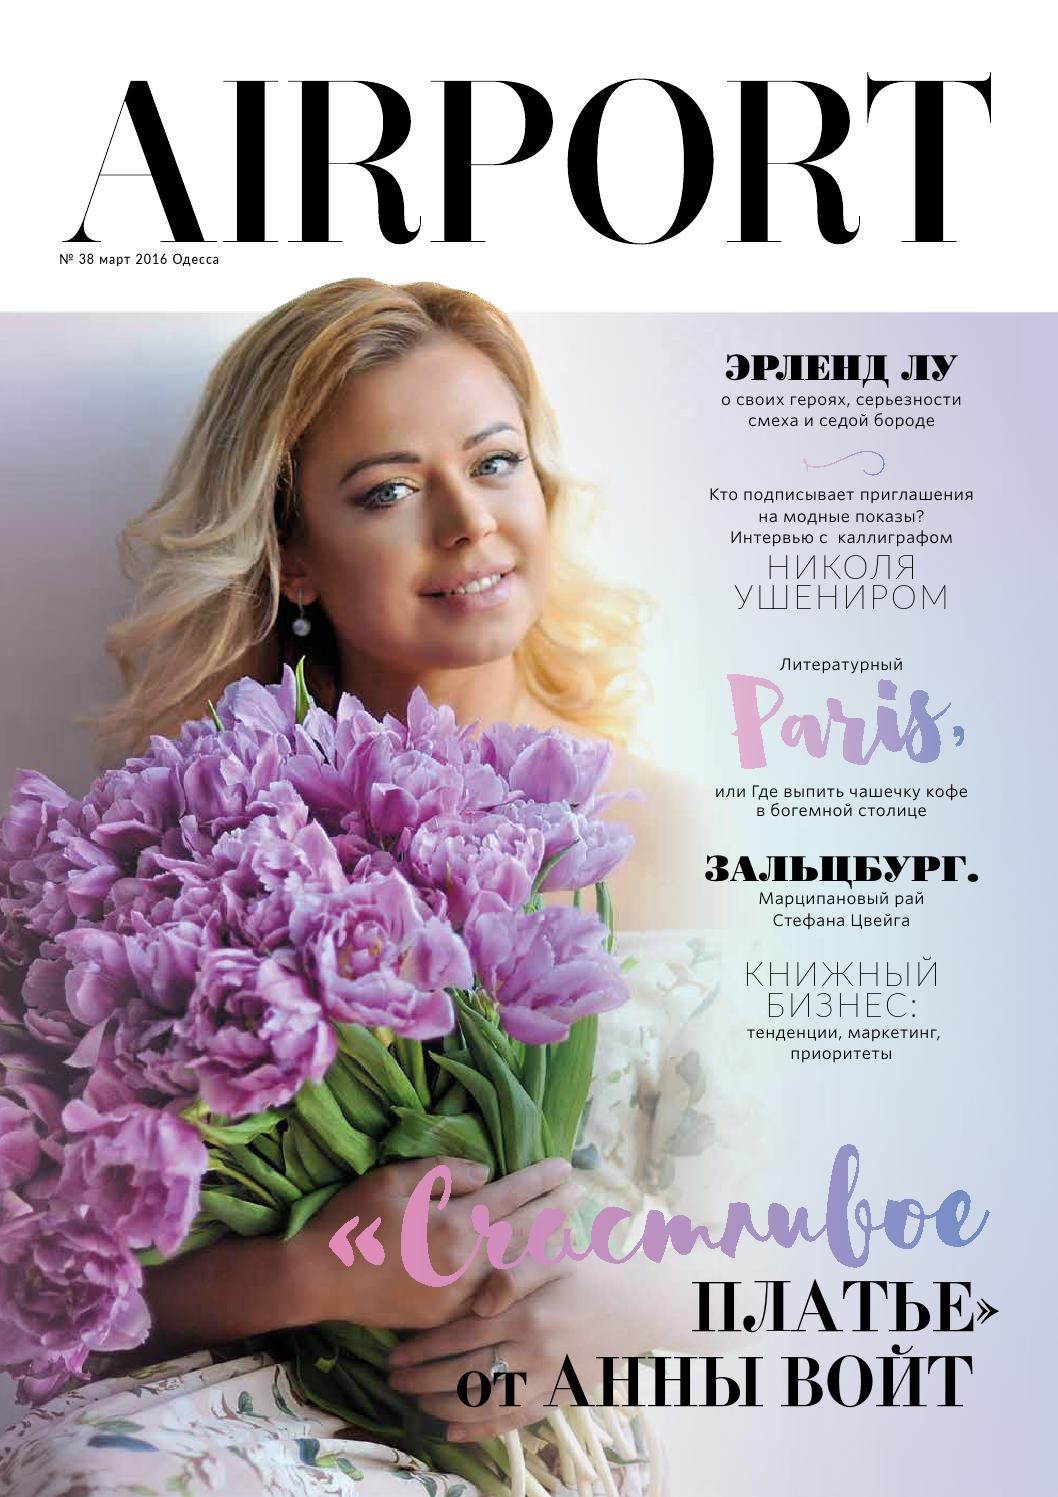 March 16 by Airport Magazine Odessa - issuu 9831d91676cc1